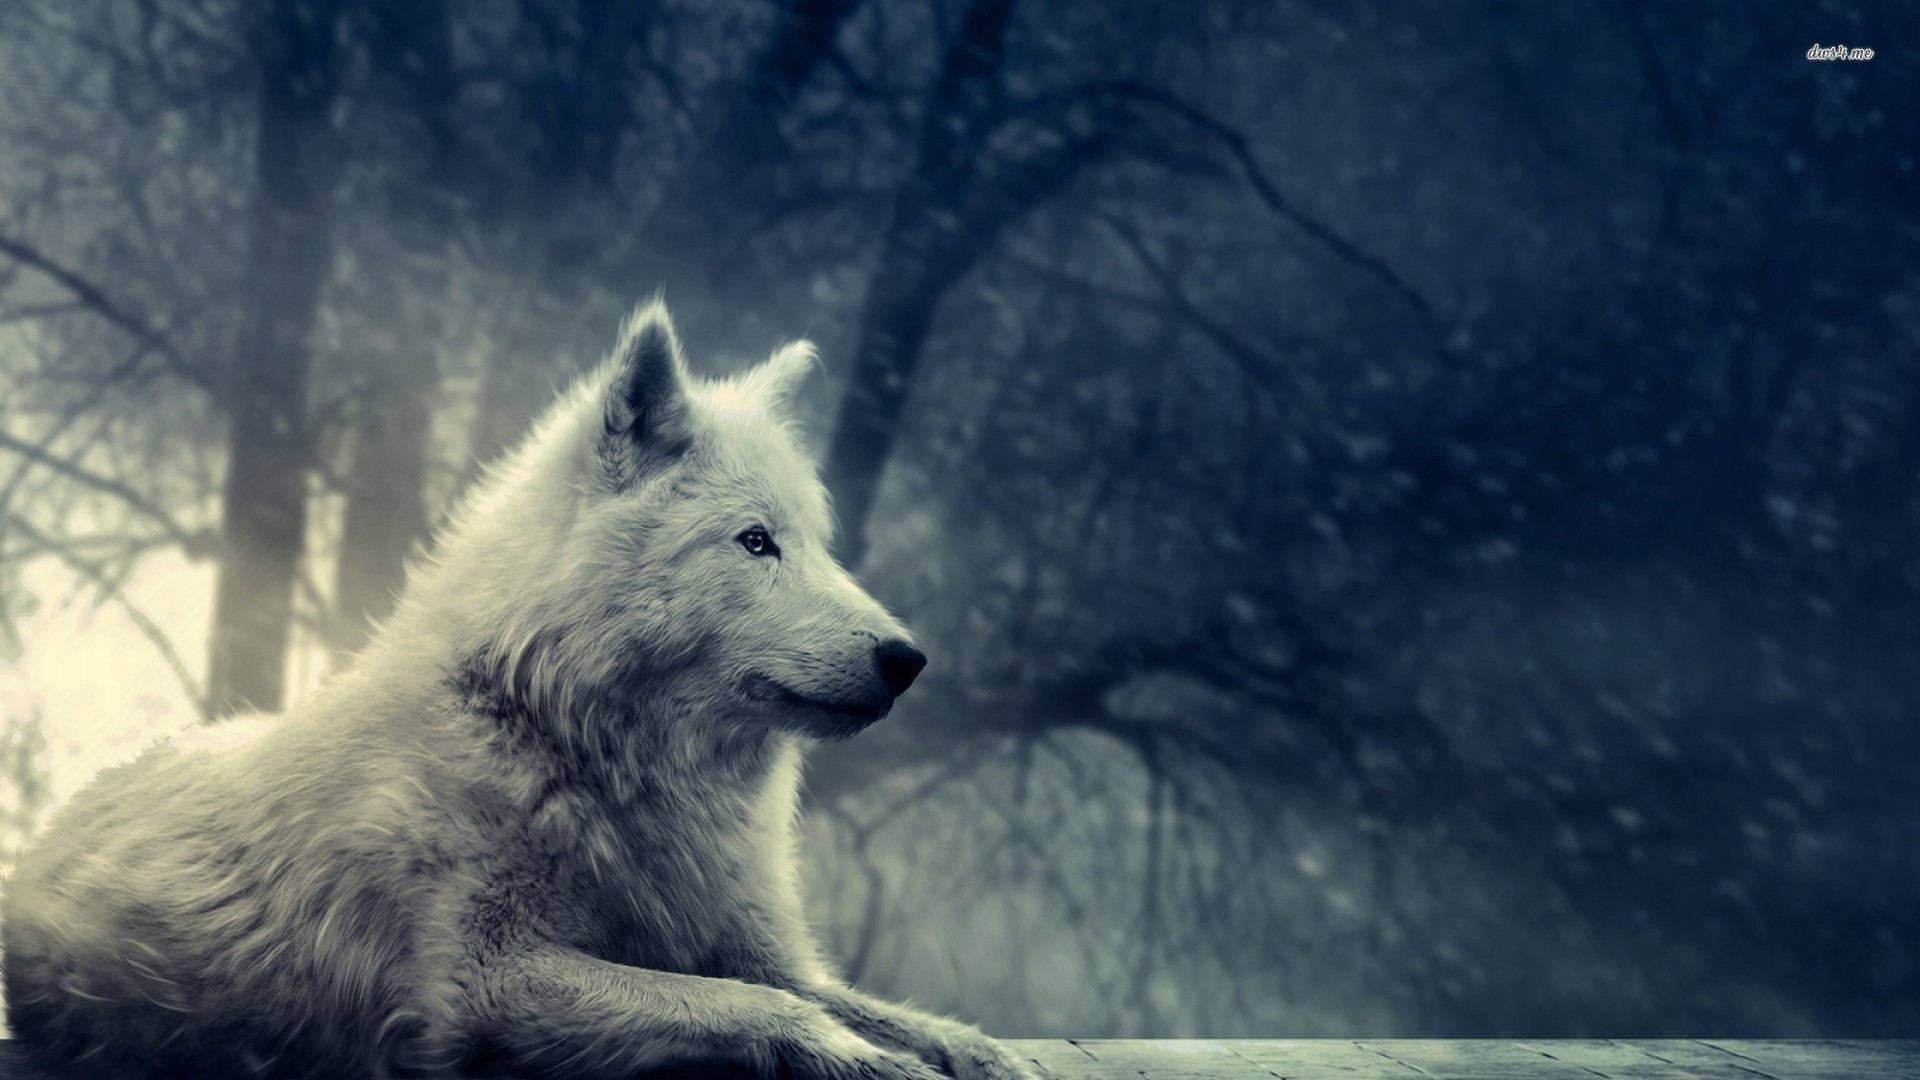 despre daci 9864 grey wolf 19201080 digital art wallpaper 1920x1080